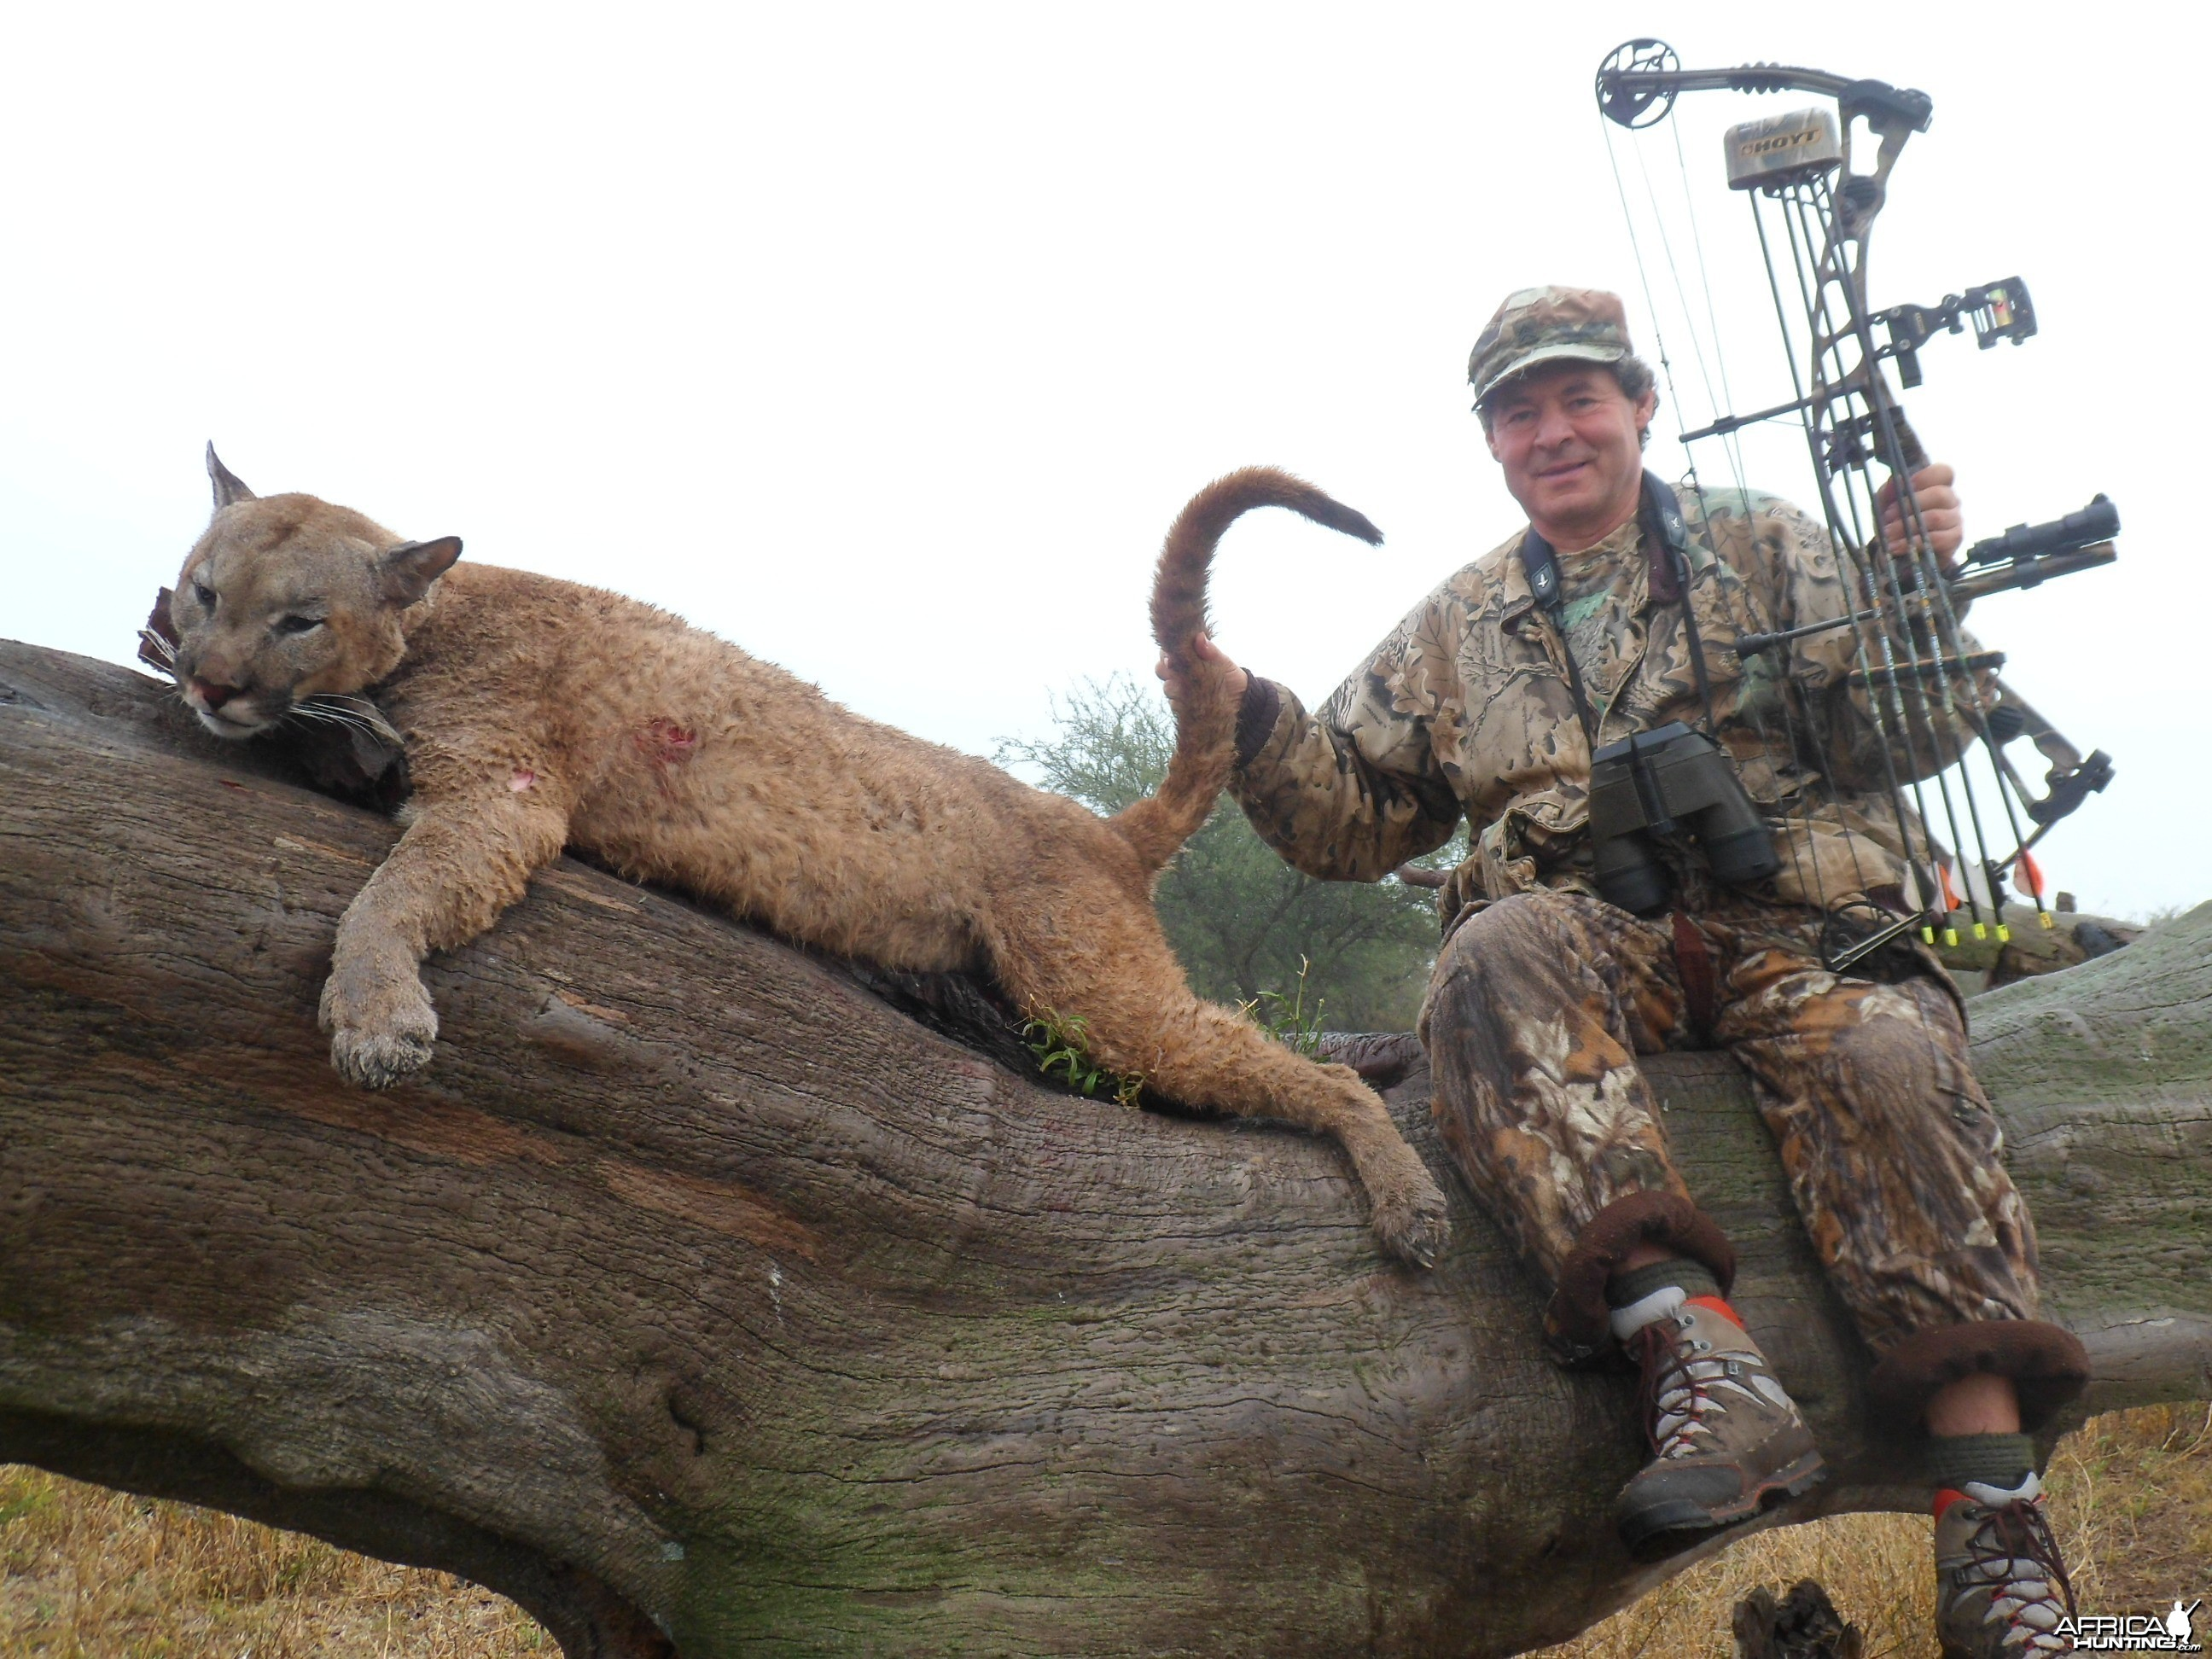 Argentina Puma hunted with Bow